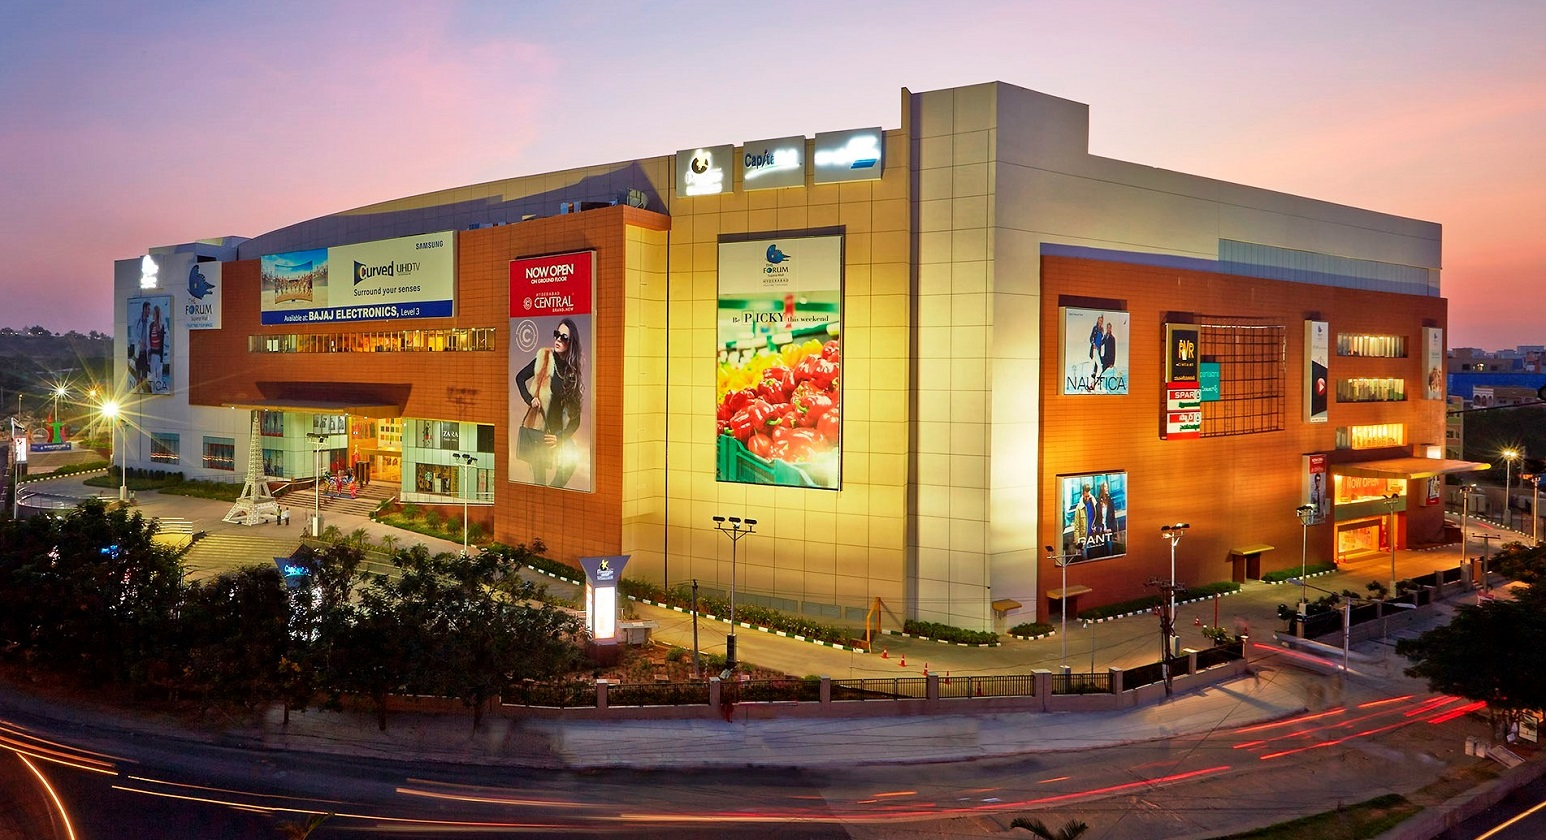 The Forum Sujana Mall - Kukatpally - Hyderabad Image